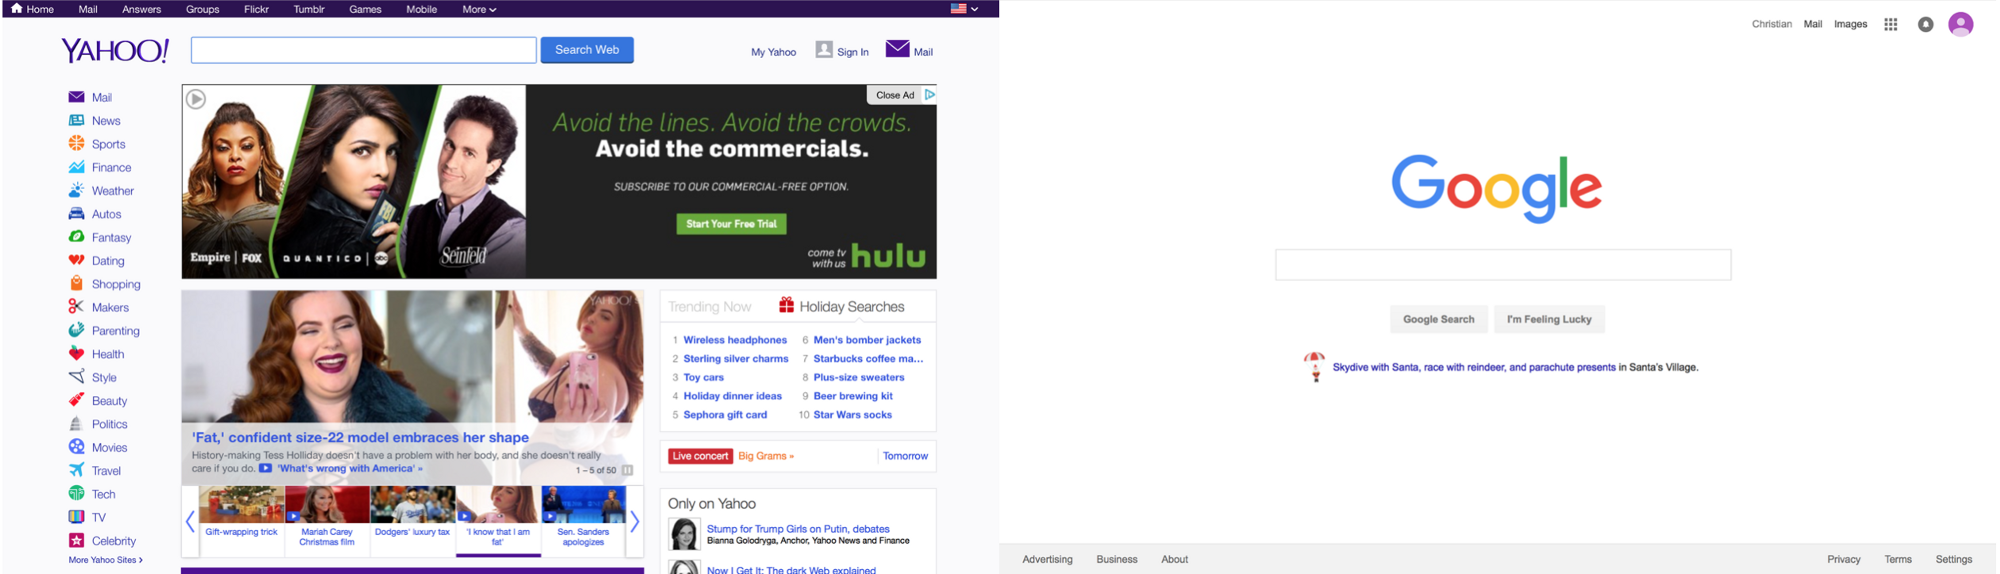 A comparison between Google's Homepage and Yahoo!'s Homepage